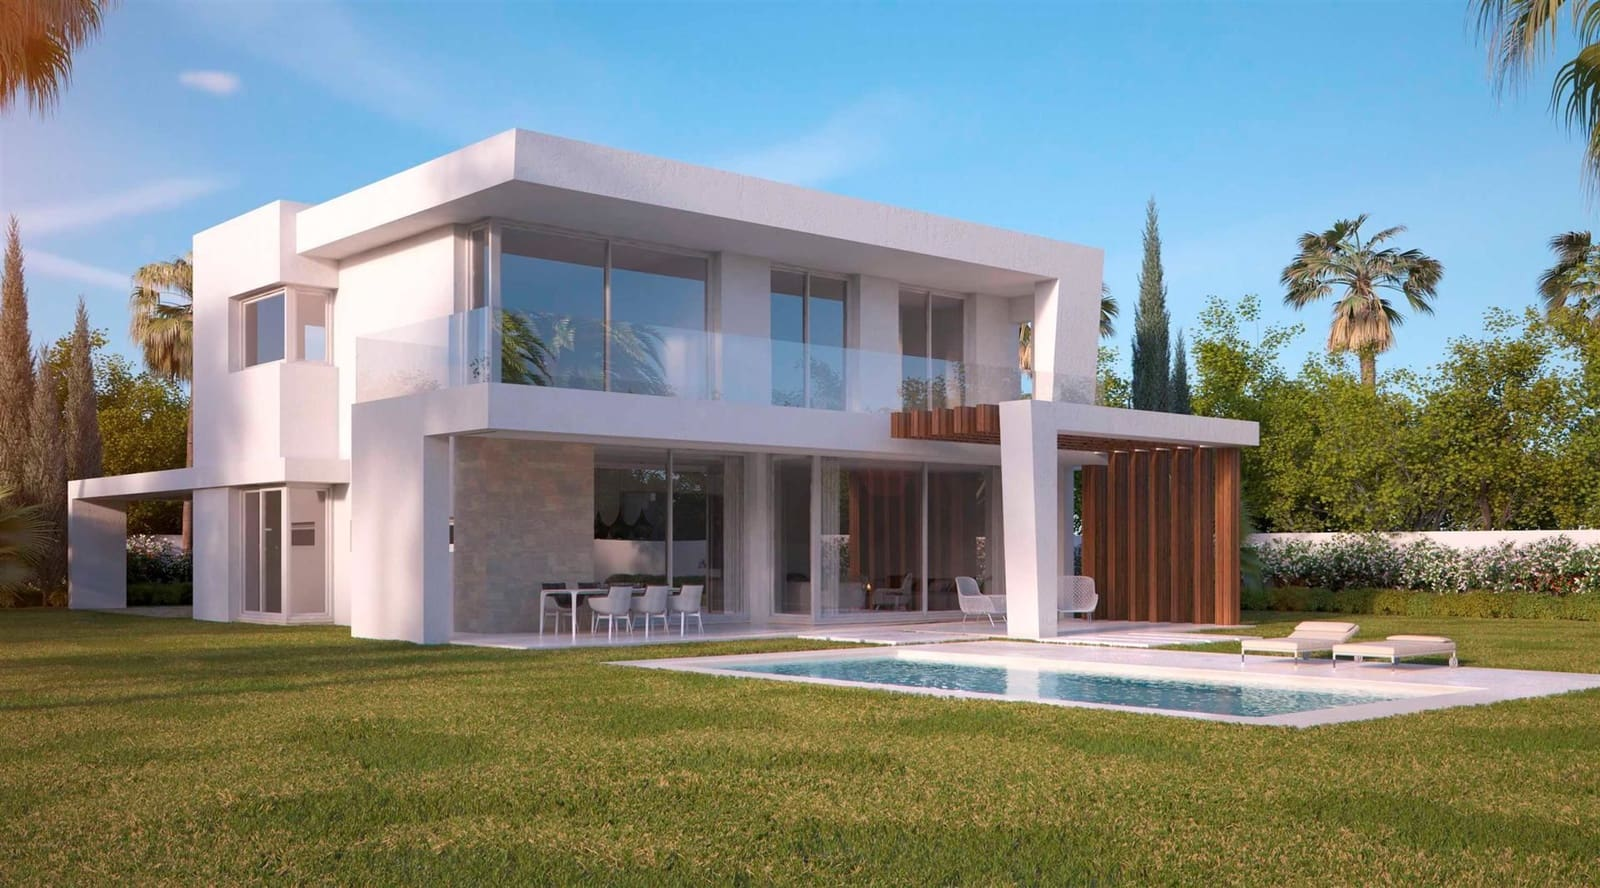 4 bedroom Villa for sale in Marbella - € 1,200,000 (Ref: 3618769)